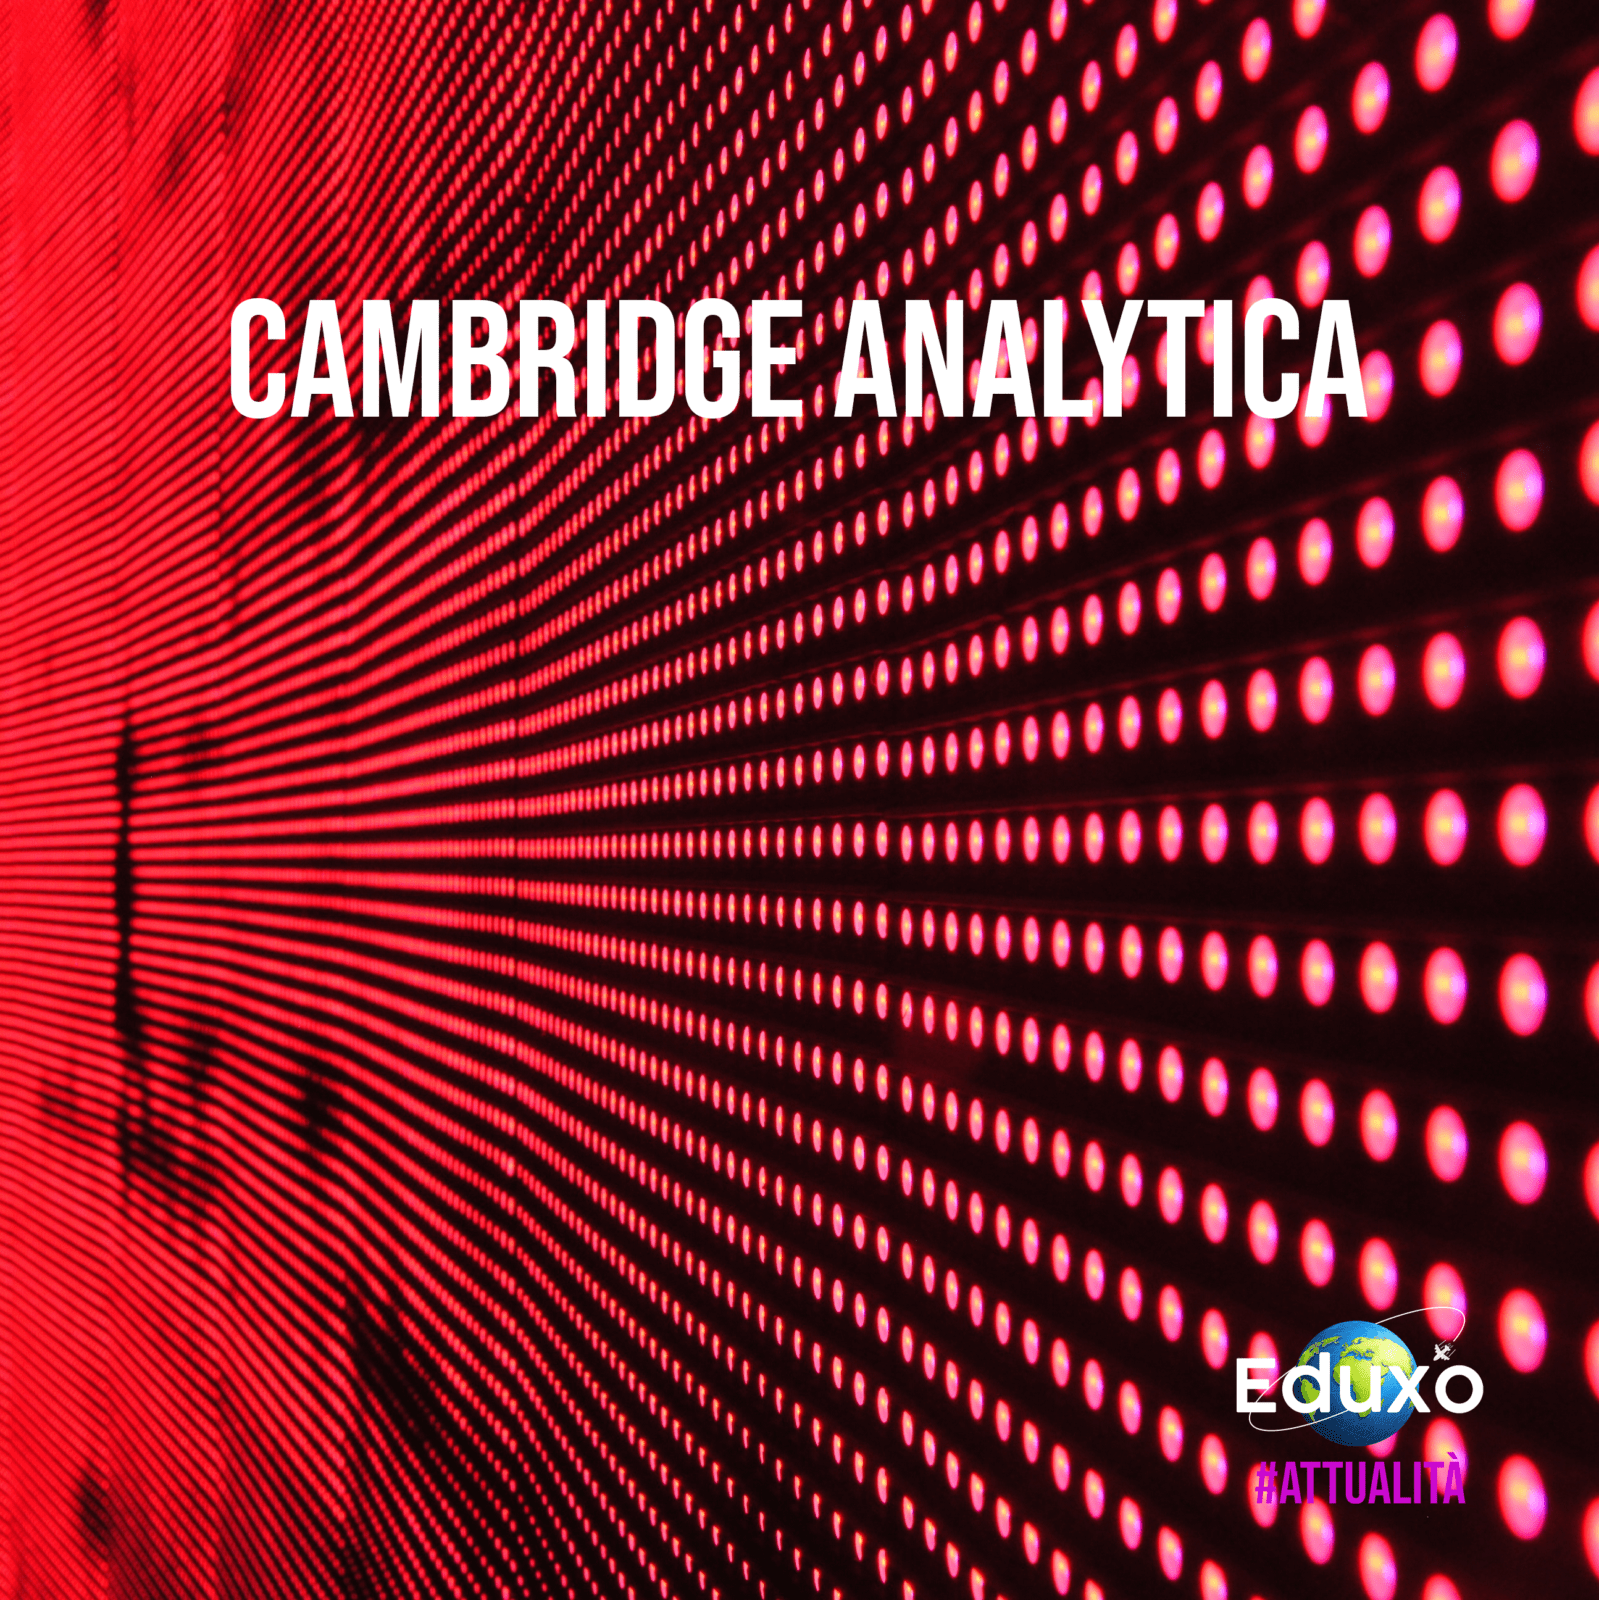 You are currently viewing Cambdrige Analytica: lo scandalo